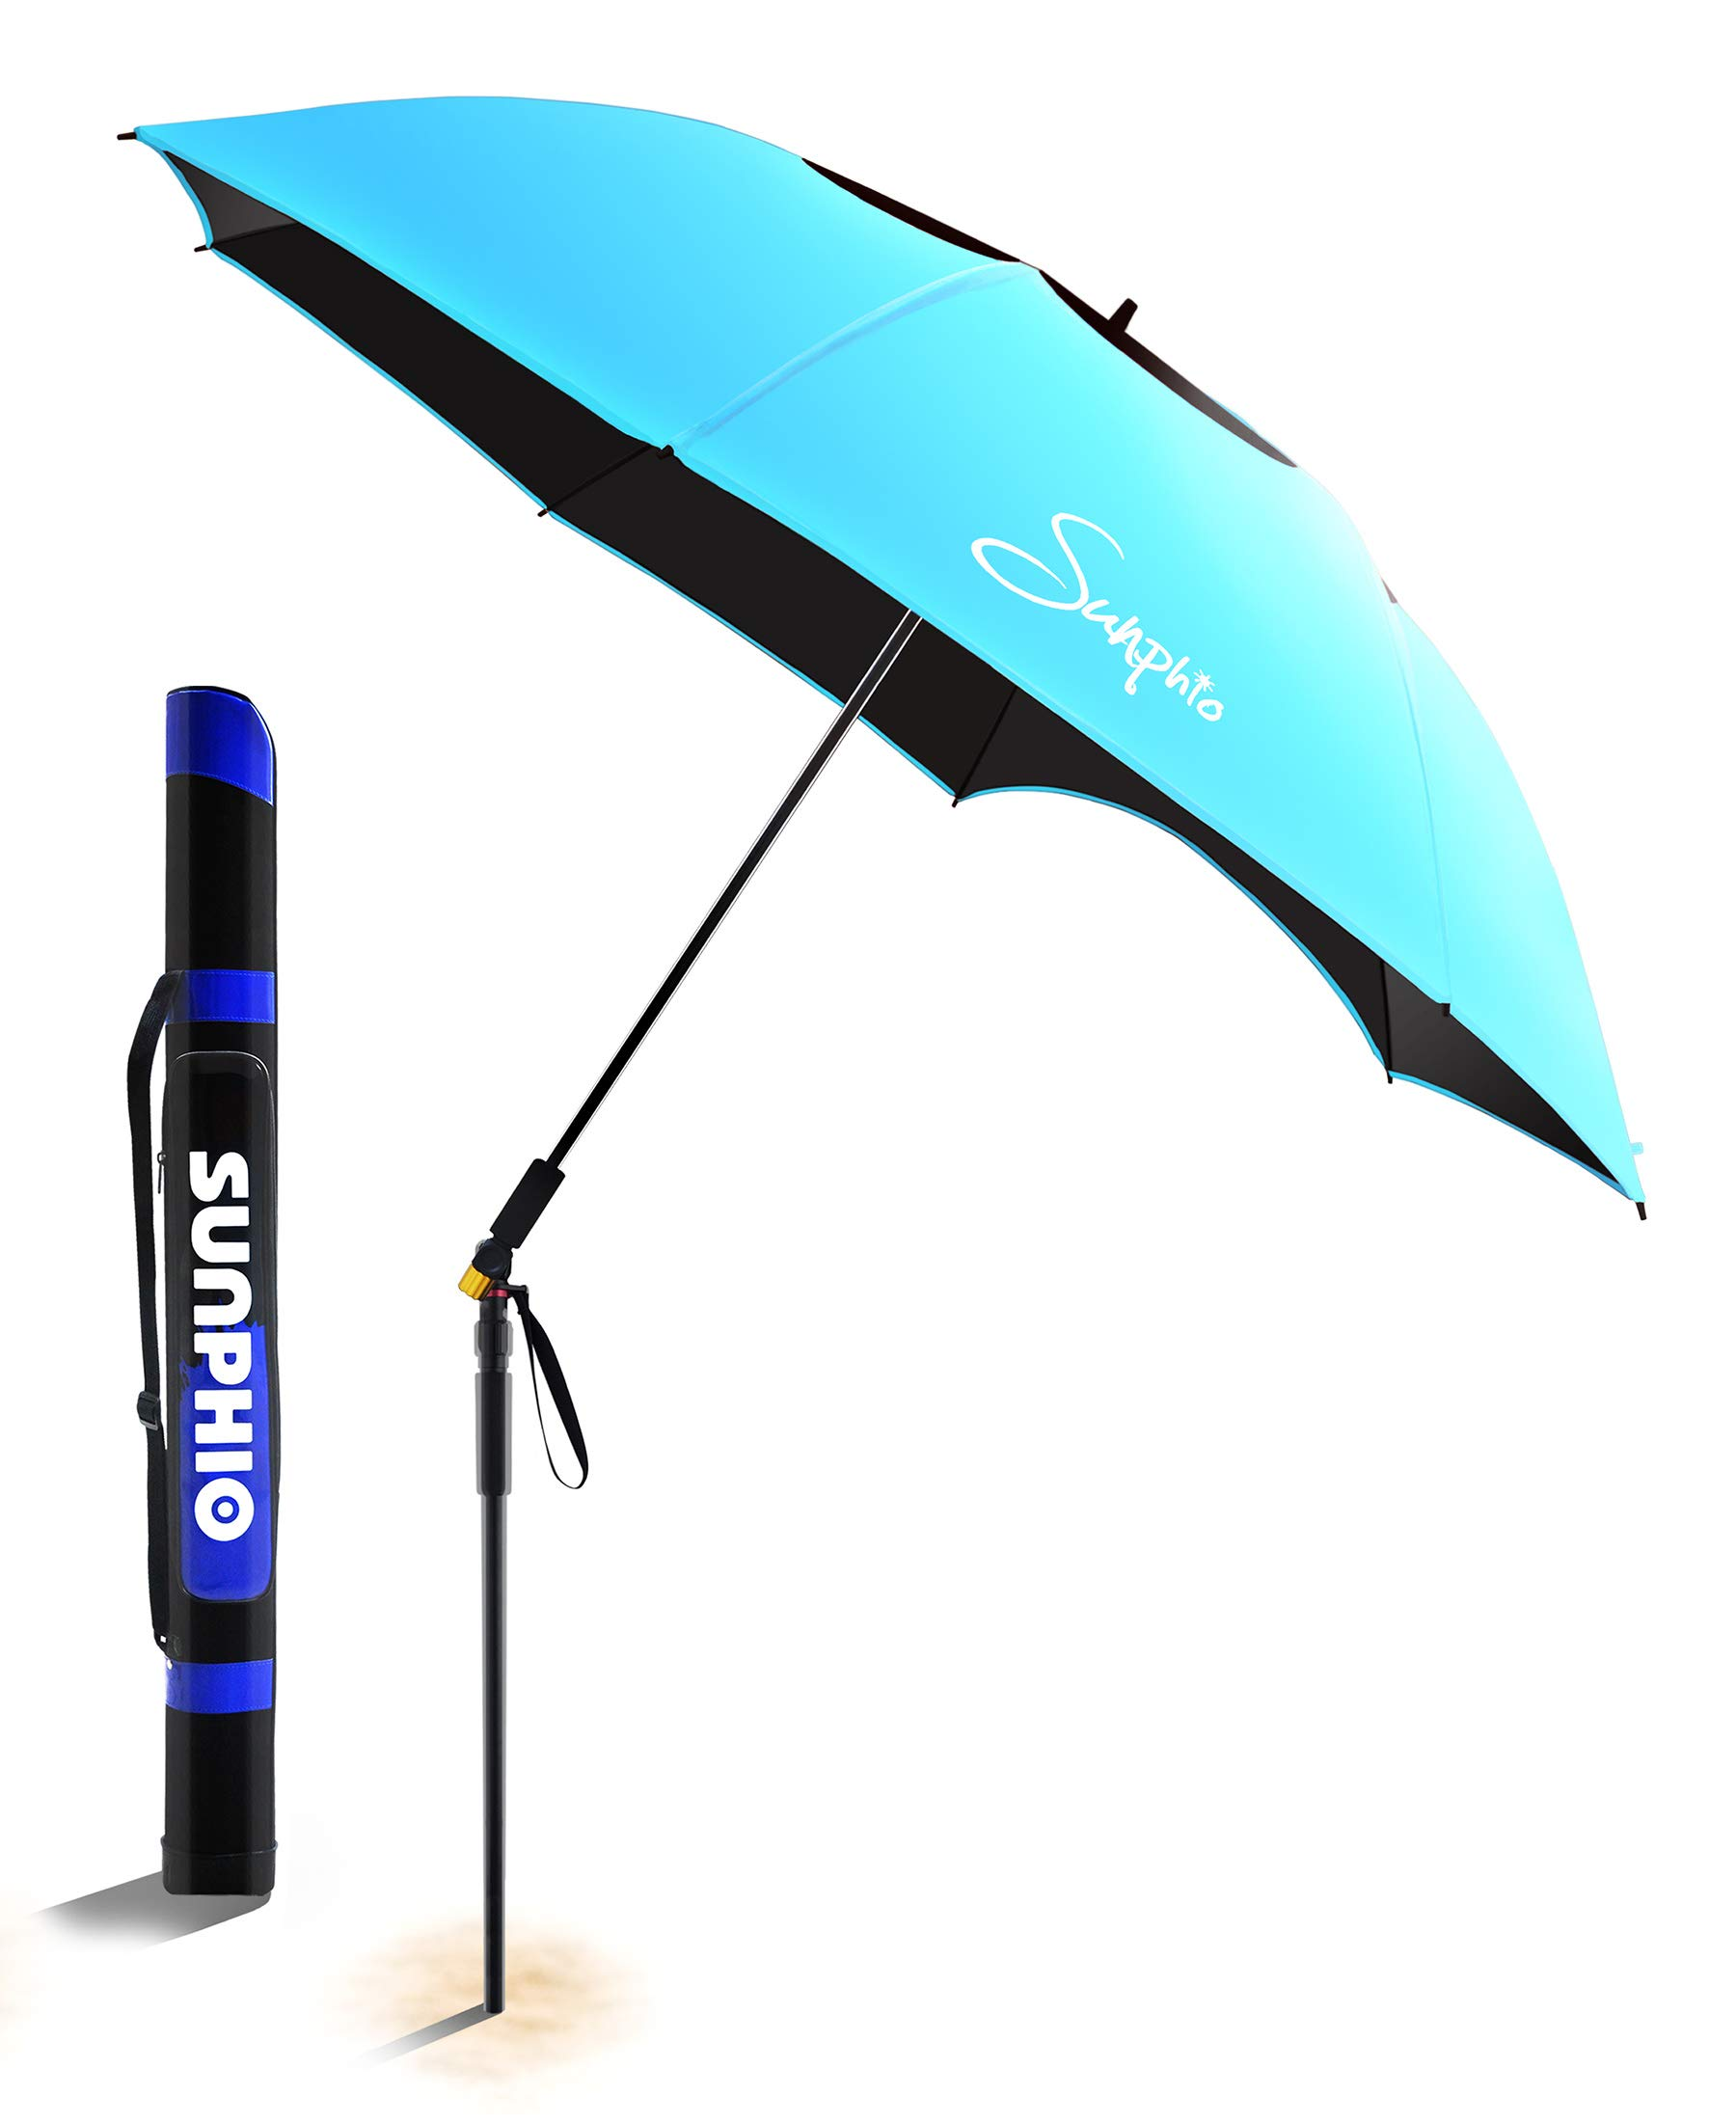 Sunphio Large Windproof Beach Umbrella, Sturdy and UV Protection, Portable Sun Shade Best for Camping, Picnic, Sand, Patio and More, 2 Metal Sand Anchor, 1 Big Carry Bag, 360 Tilt Mechanism (Blue) by Sunphio